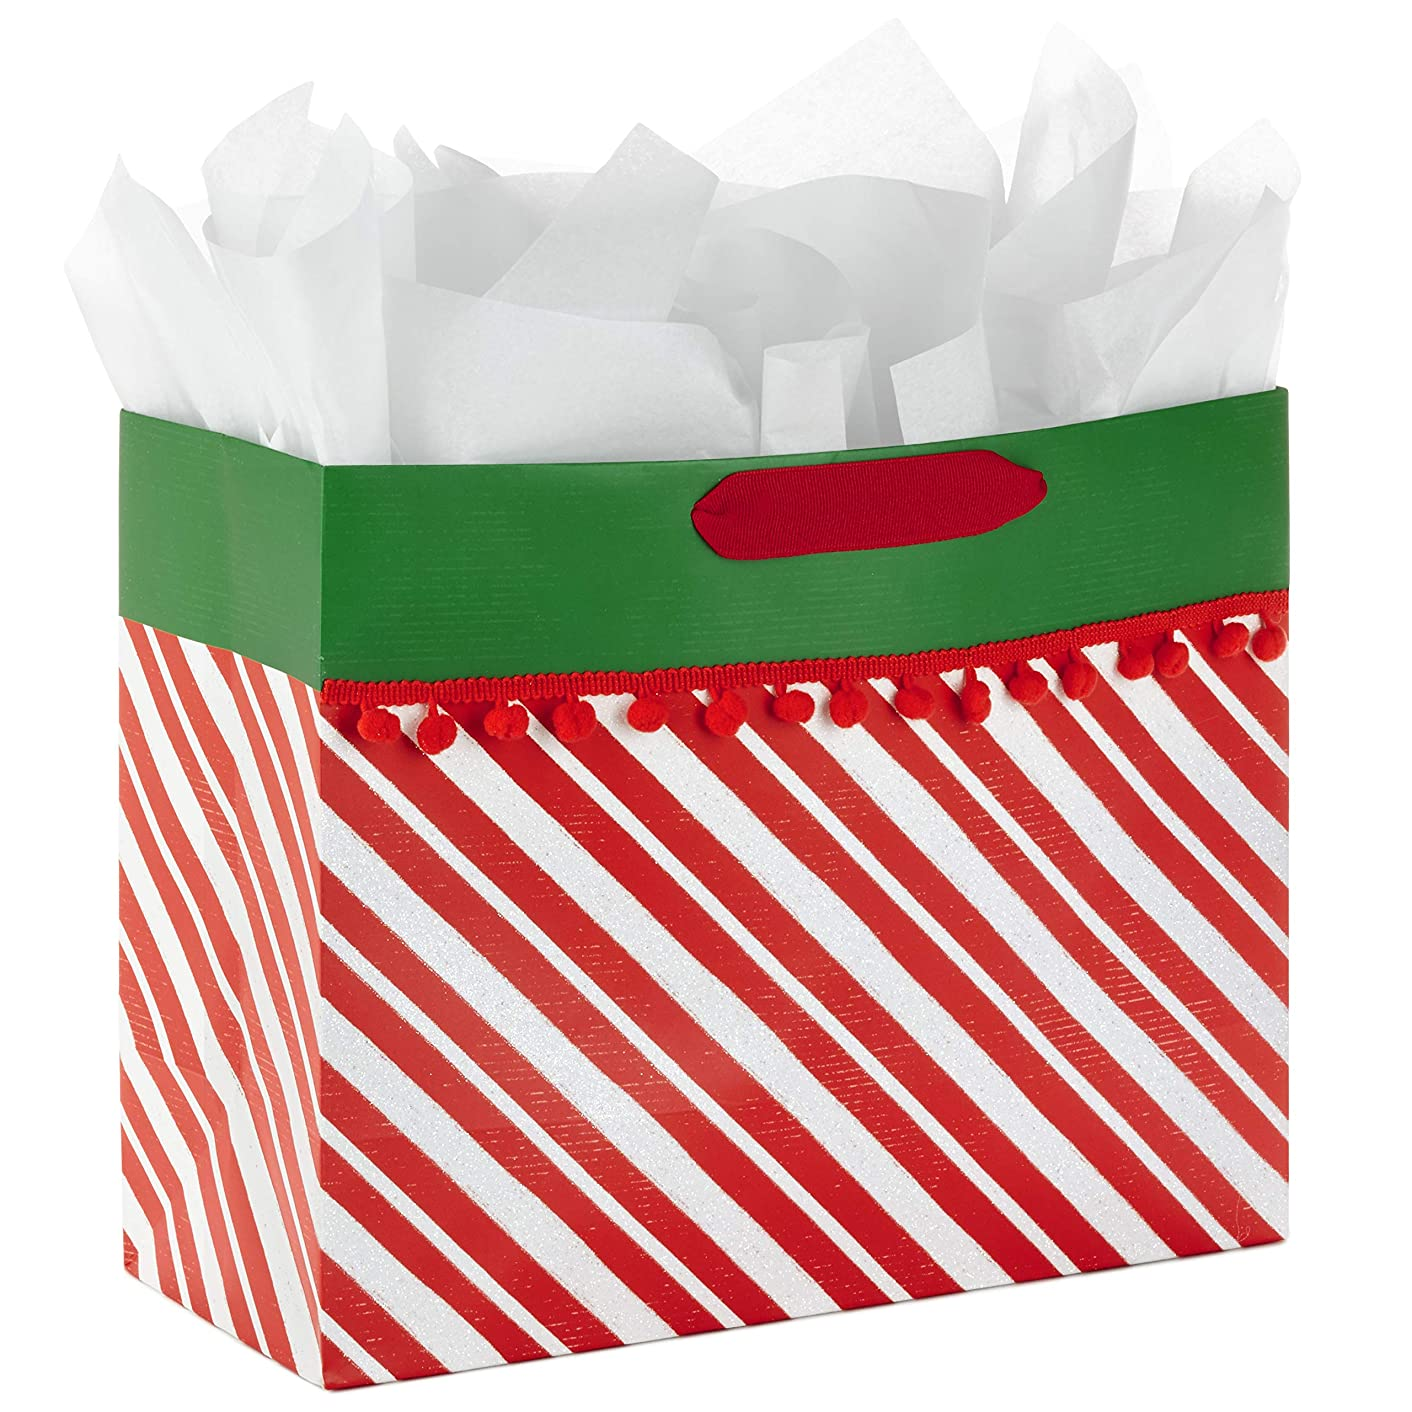 Hallmark Large Christmas Gift Bag with Tissue Paper (Red Stripes and Pom Poms)